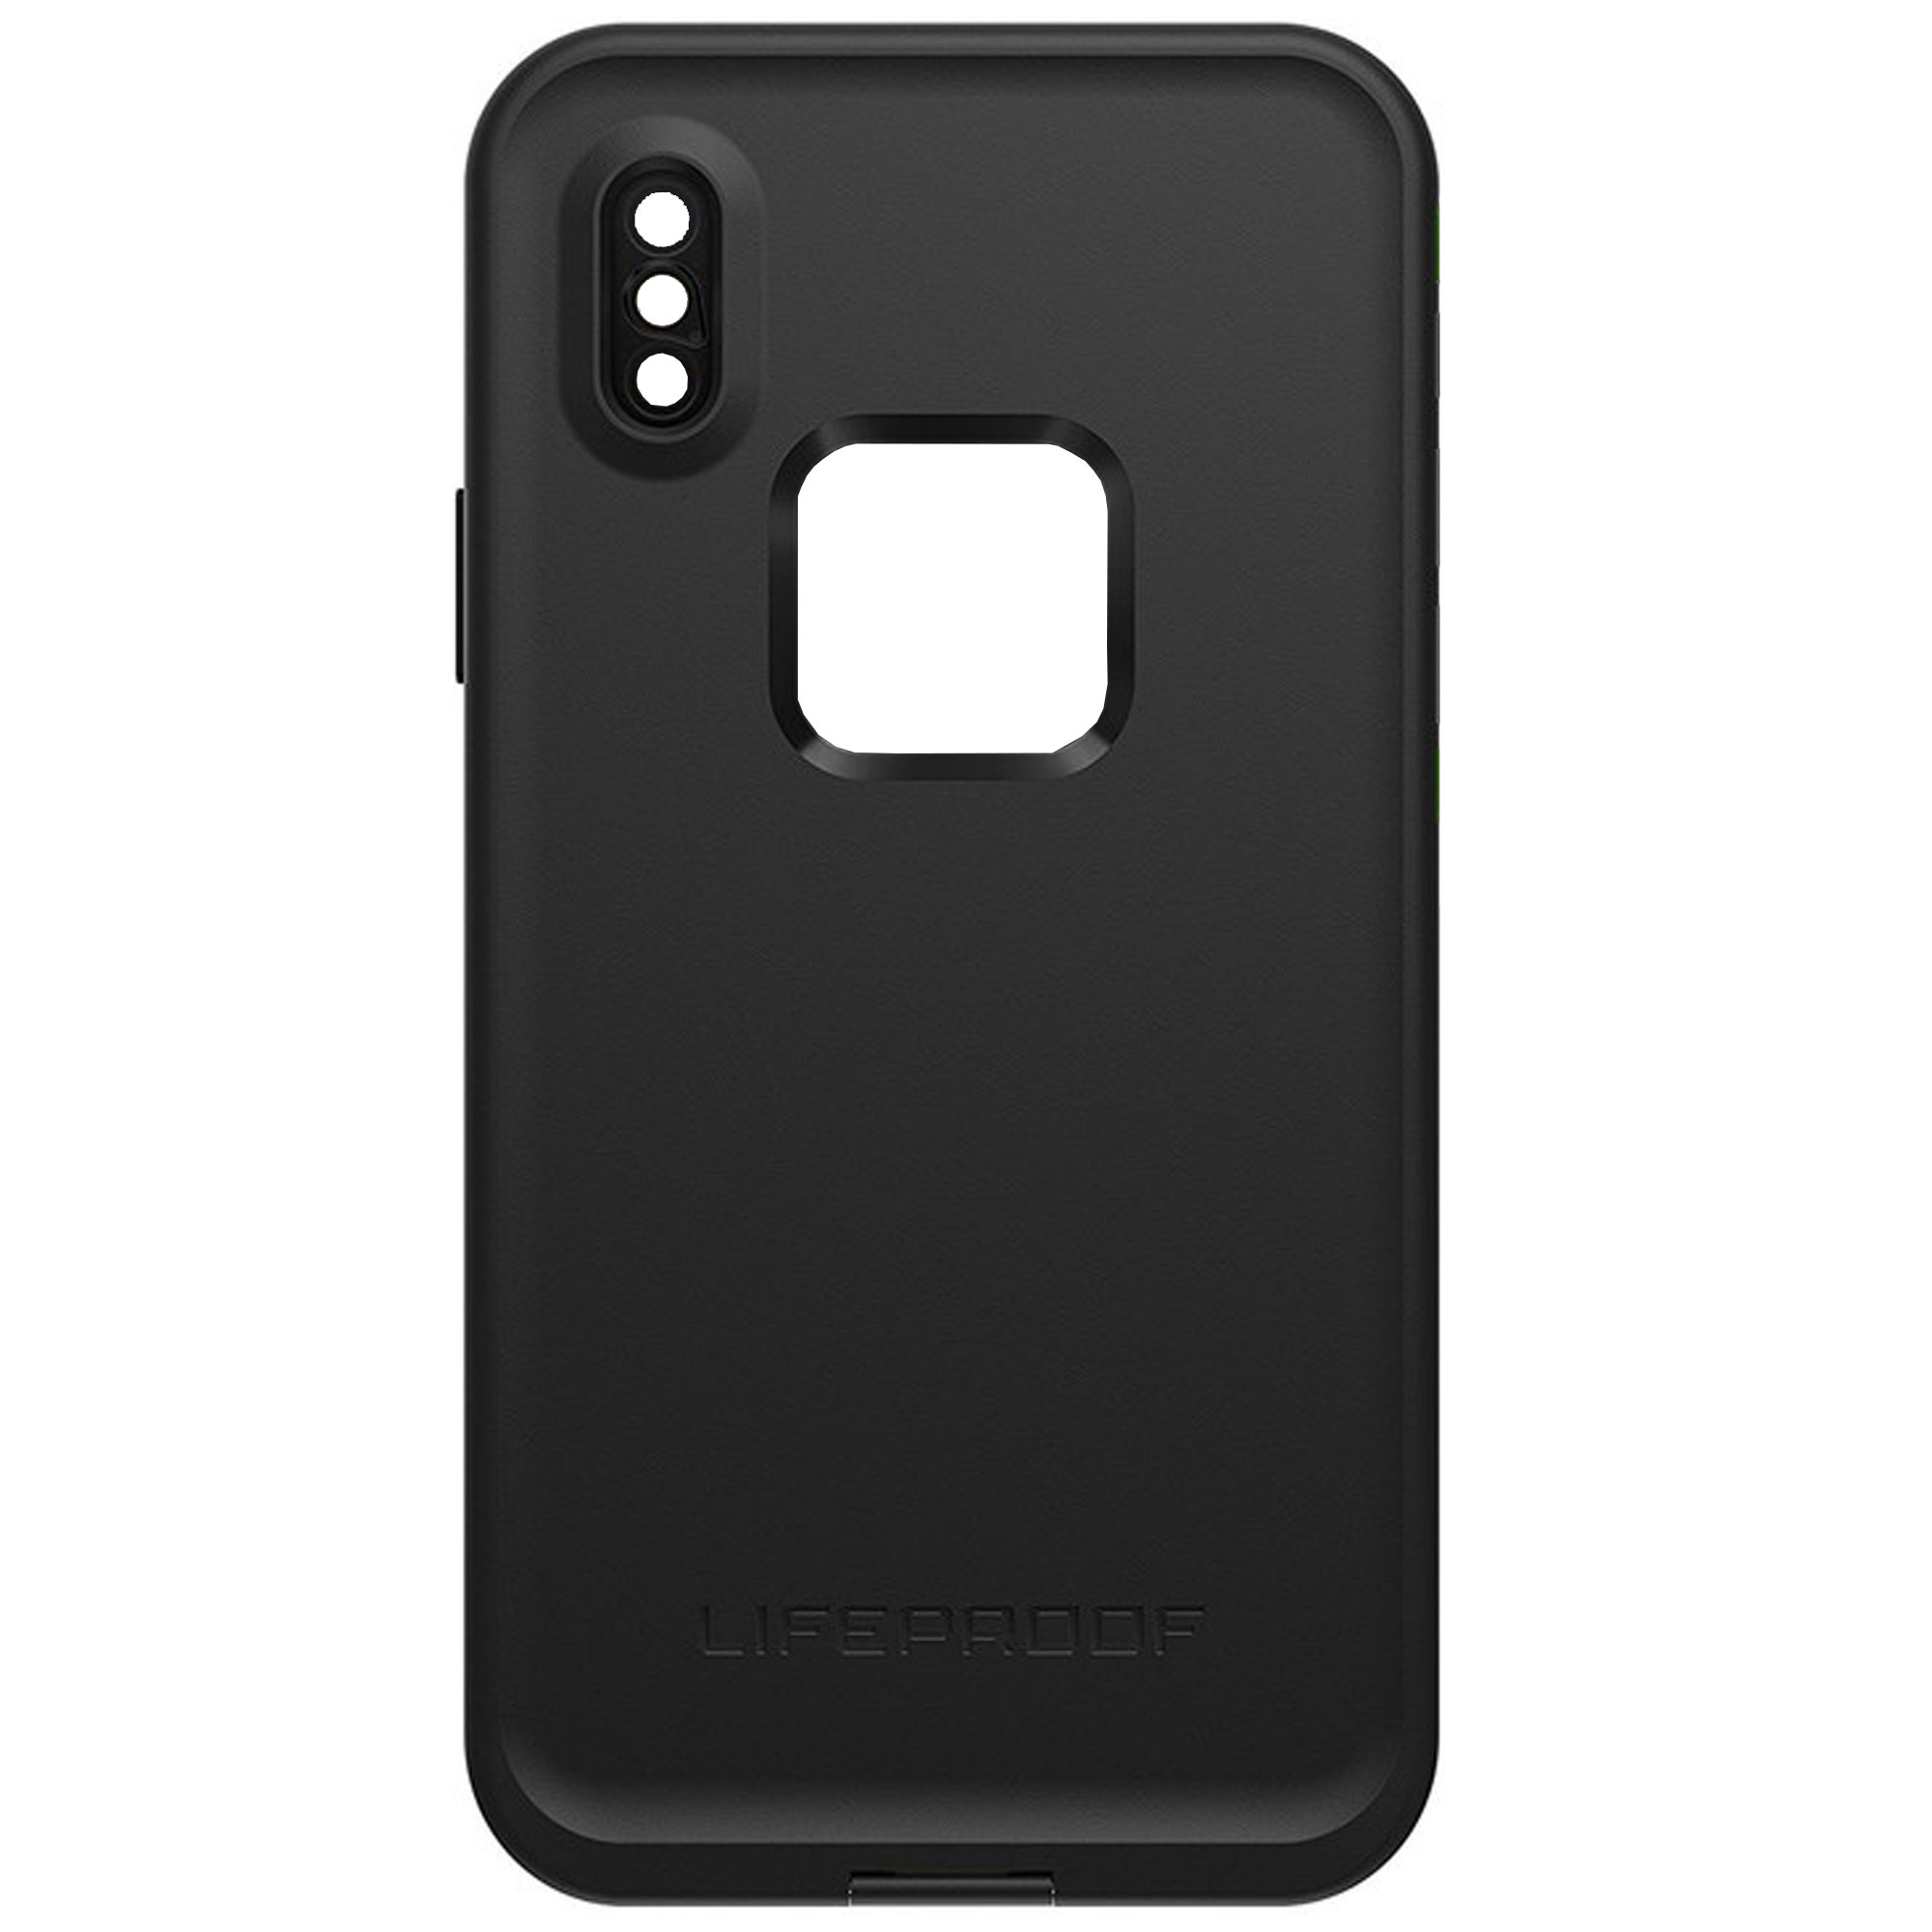 new product 7a2e4 dd8c2 Otterbox,77-57163,OtterBox Lifeproof Fre Apple iPhone X